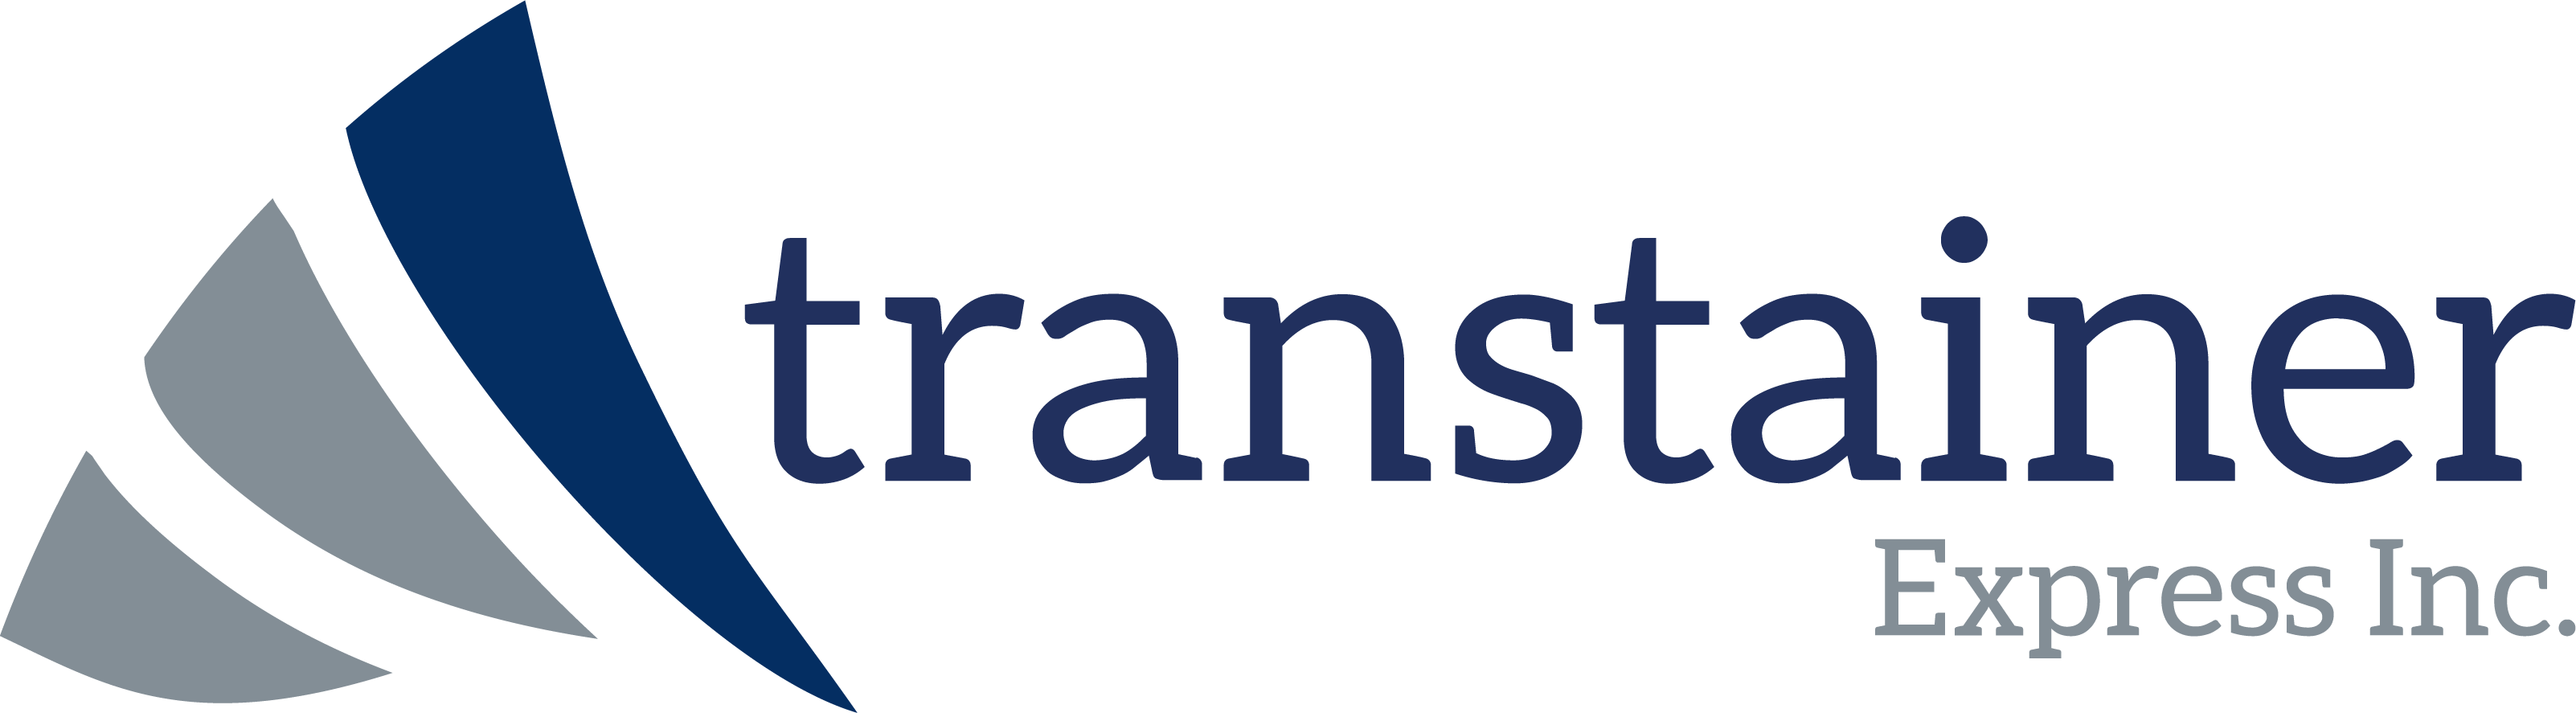 Transtainer Express Inc.